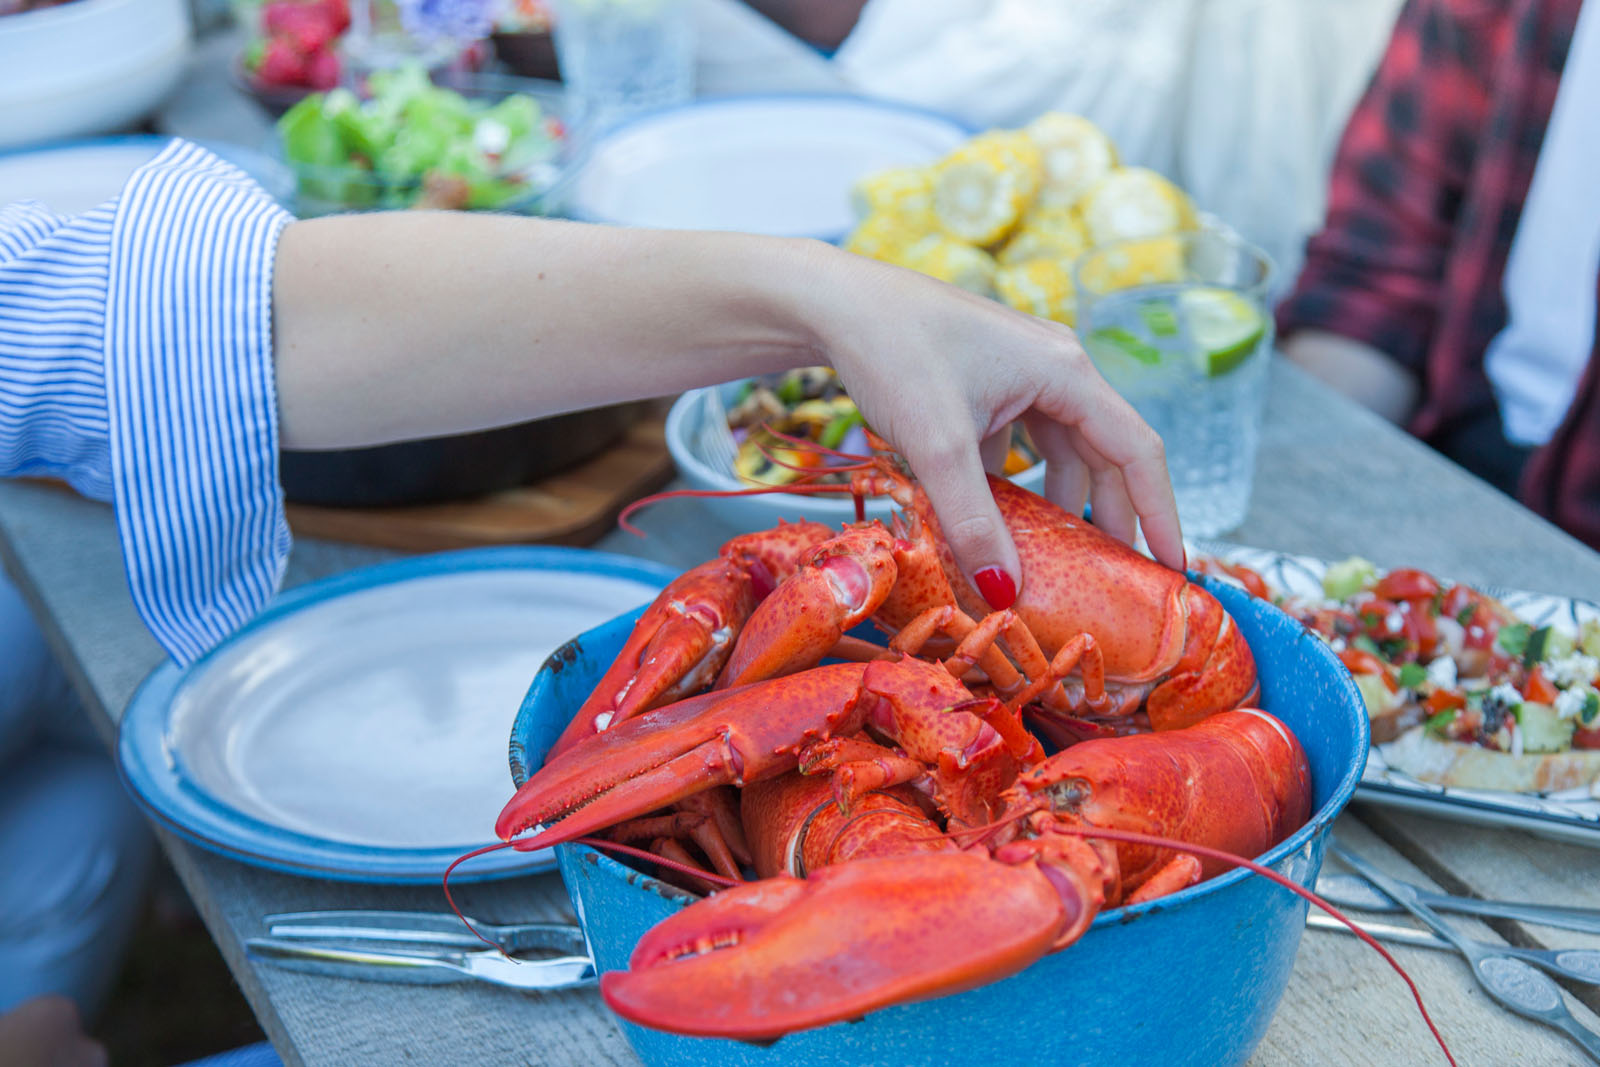 Sample Canada's Food Island - 3 day package from $913.00